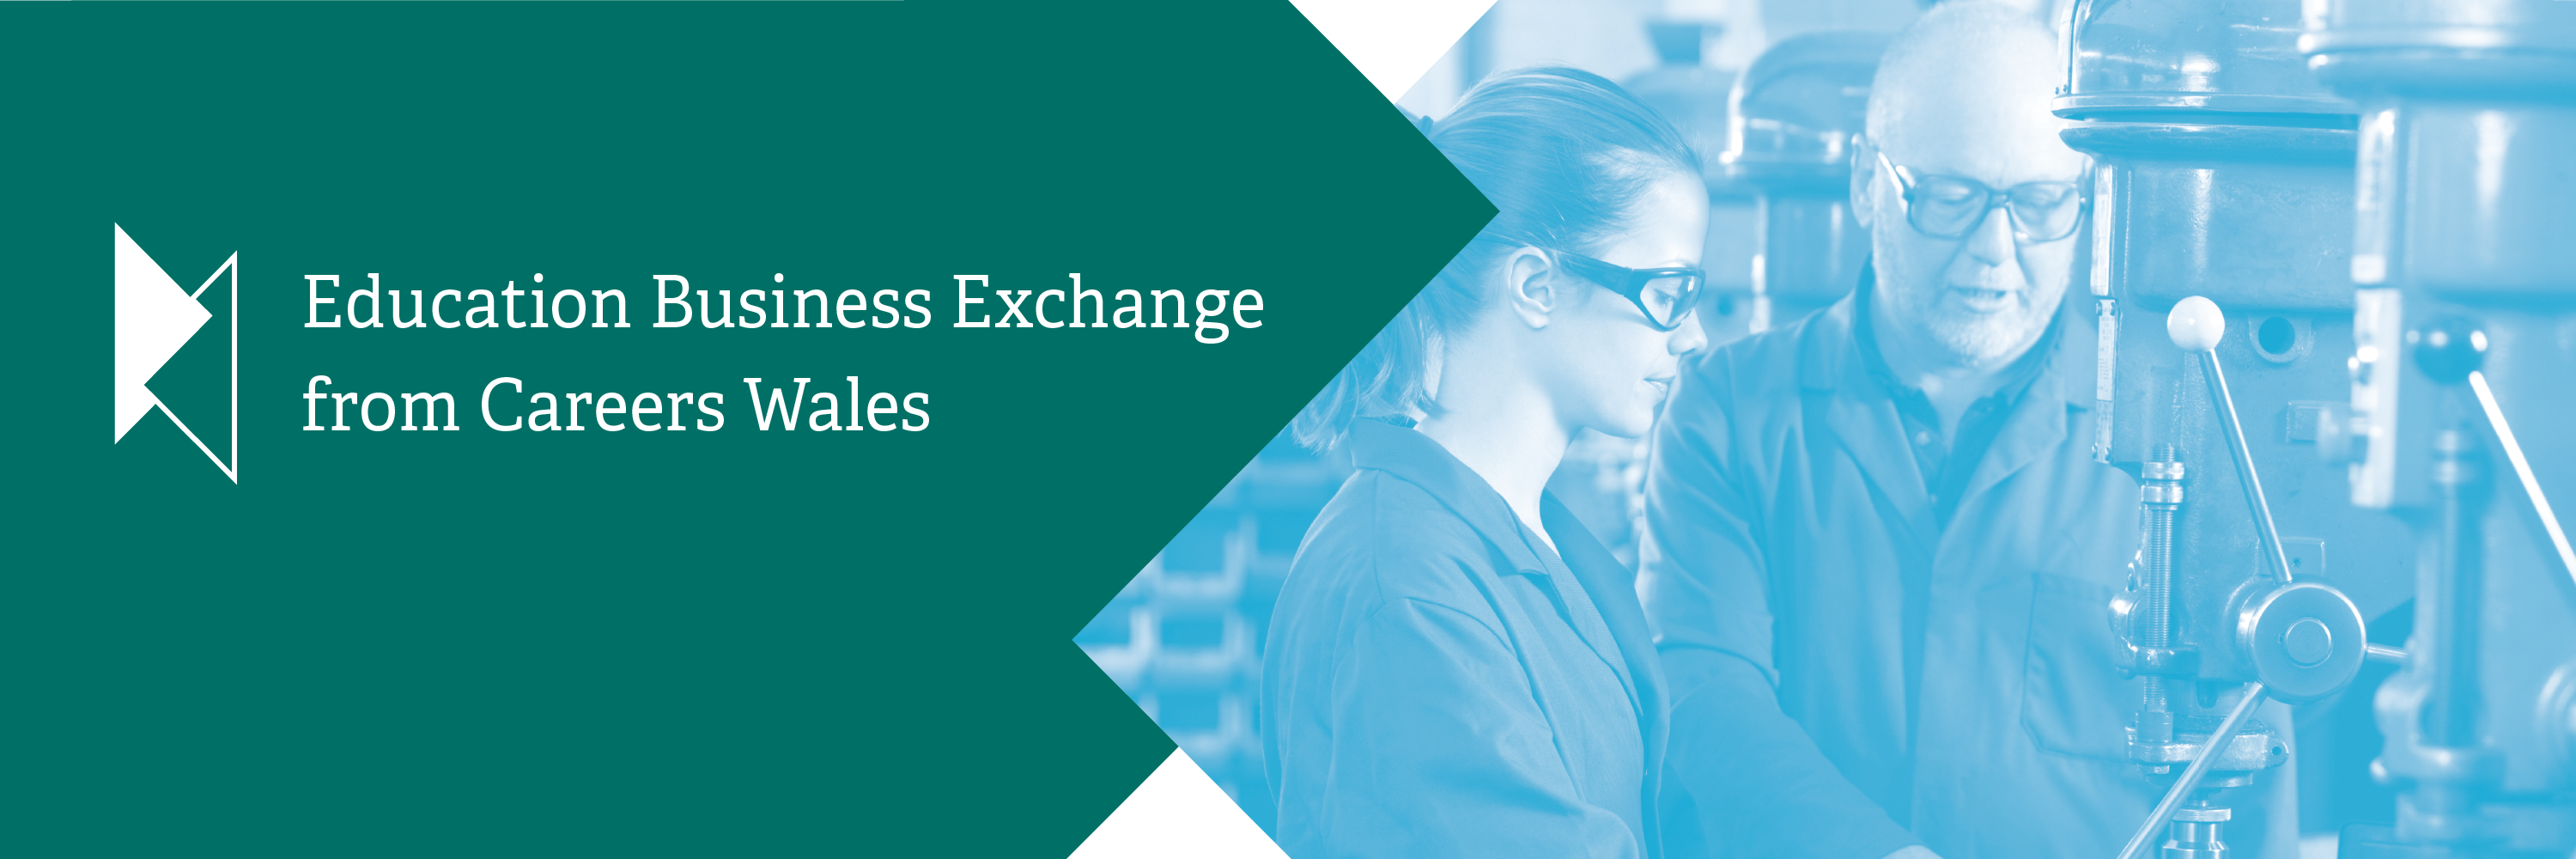 Education Business Exchange header